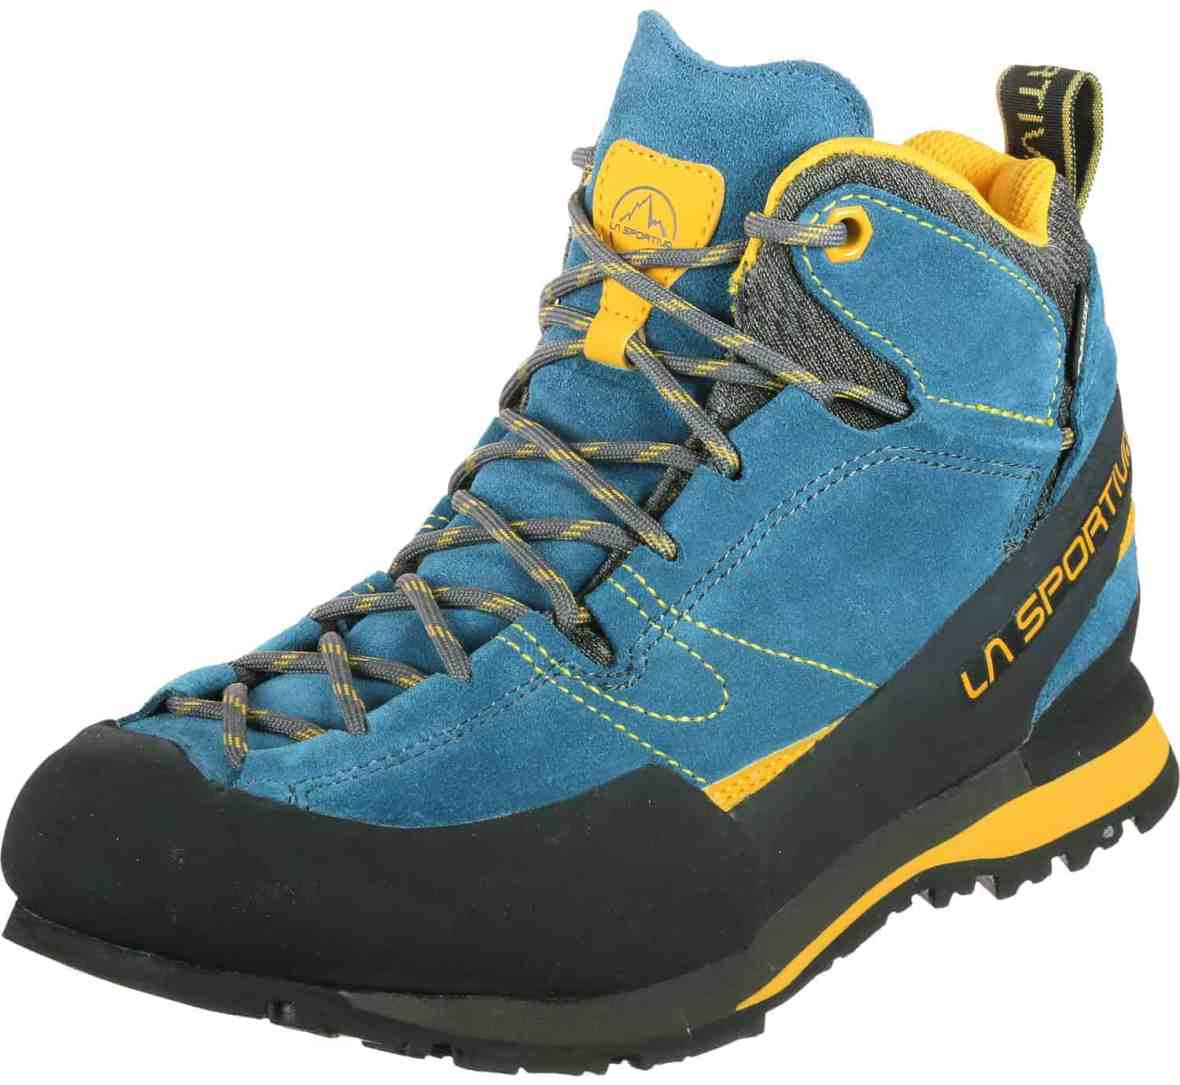 Sportiva Boulder X Mid Boots